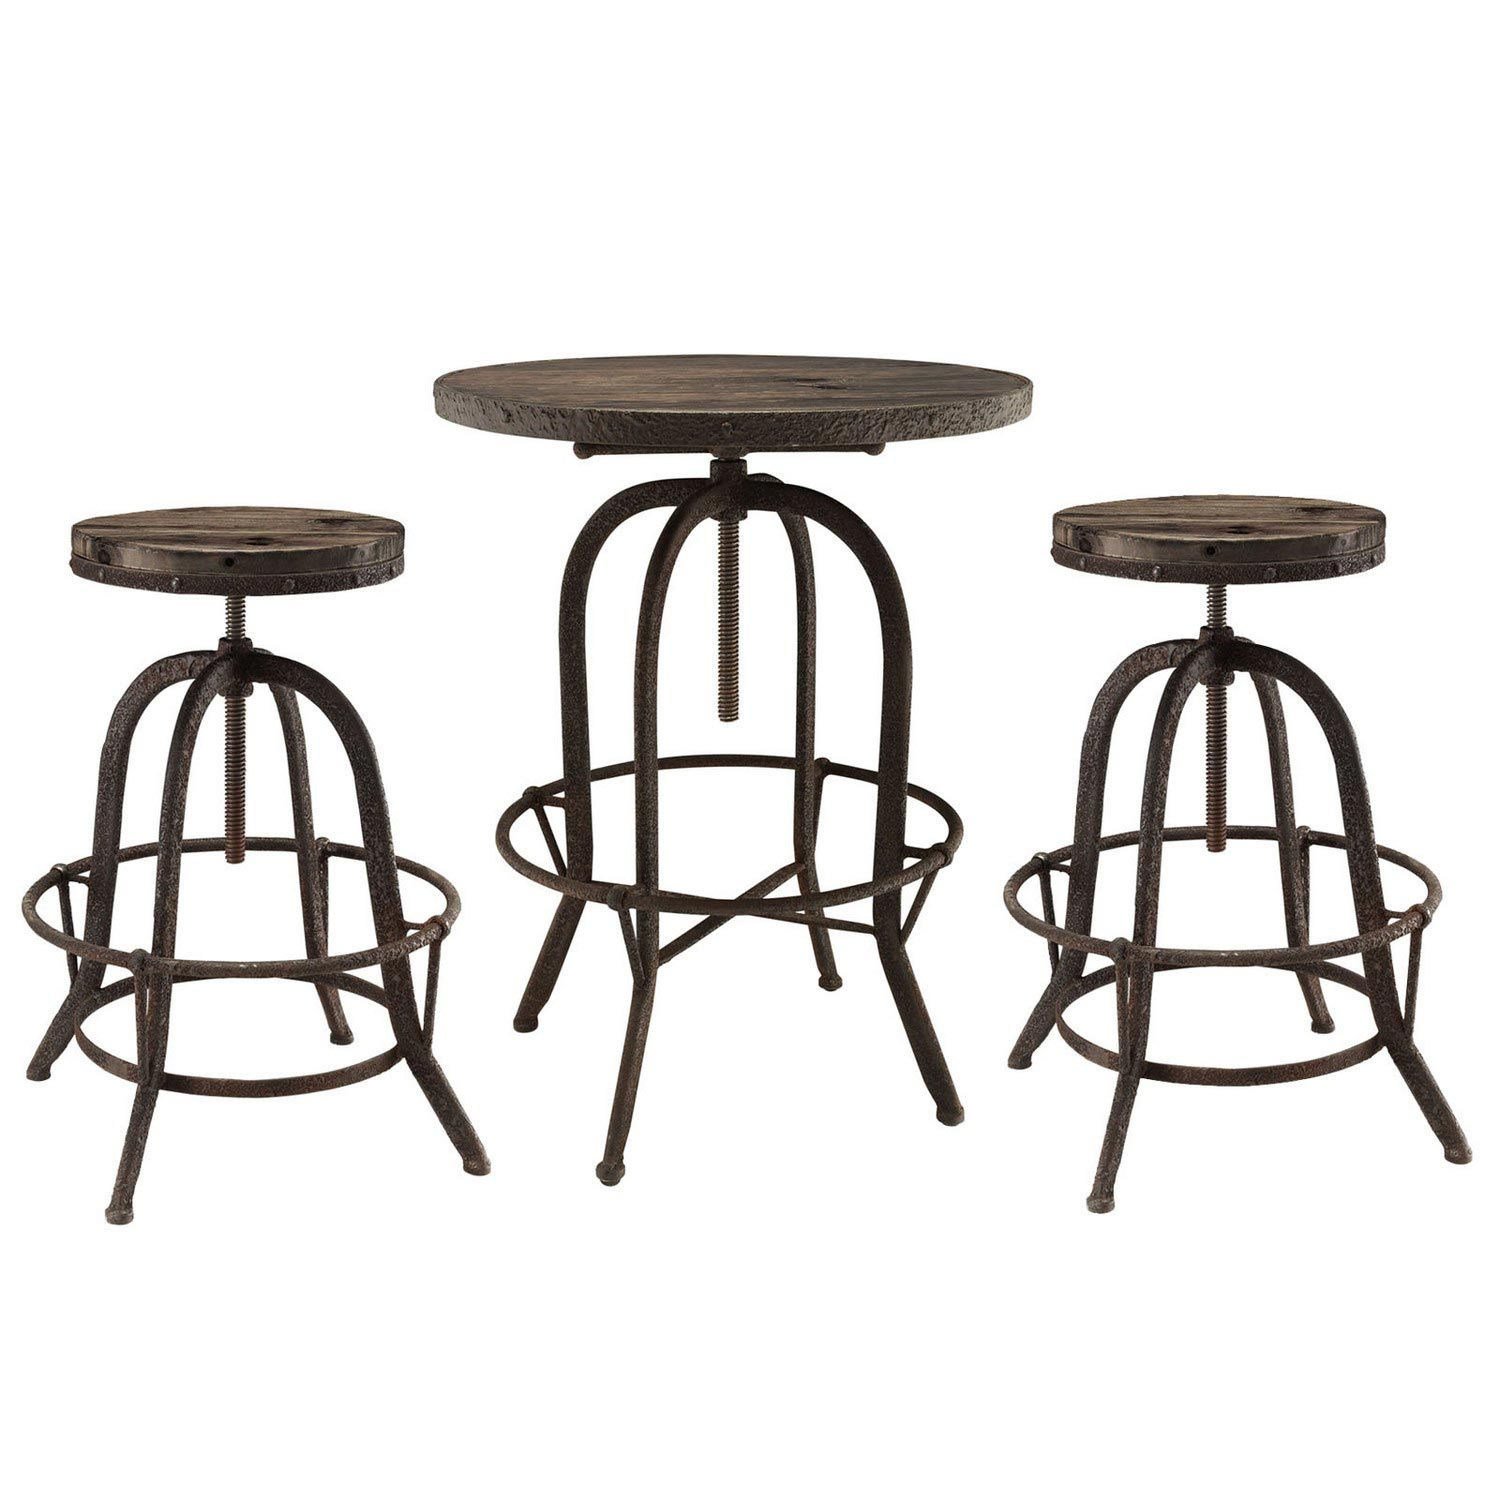 Modway Sylvan 3 Piece Pub Set - Brown